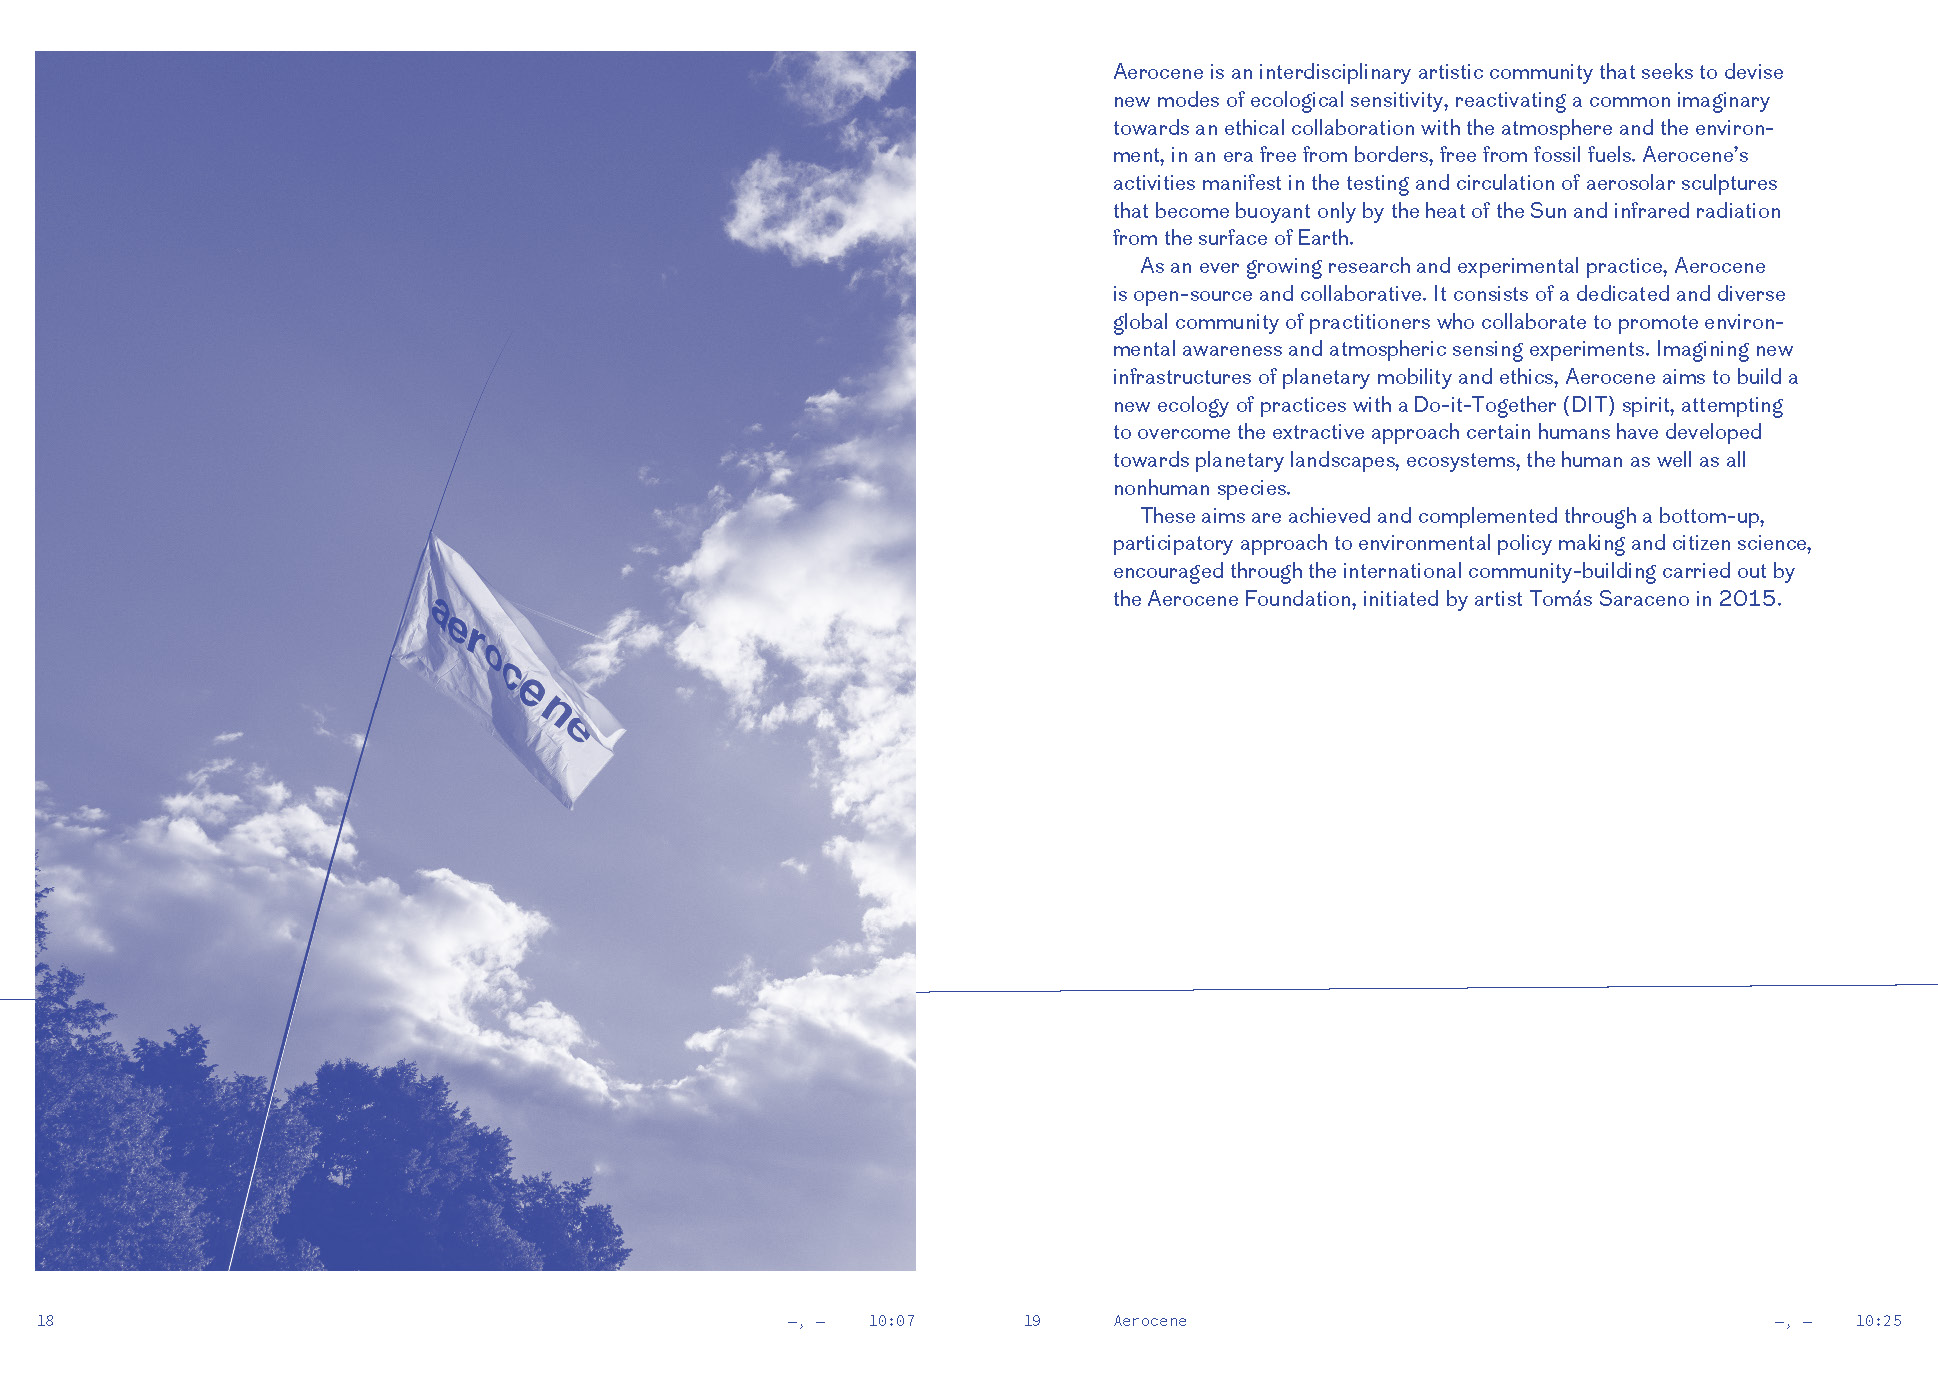 20AE_MovementsfortheAir_Aerocene (1)_Page_010